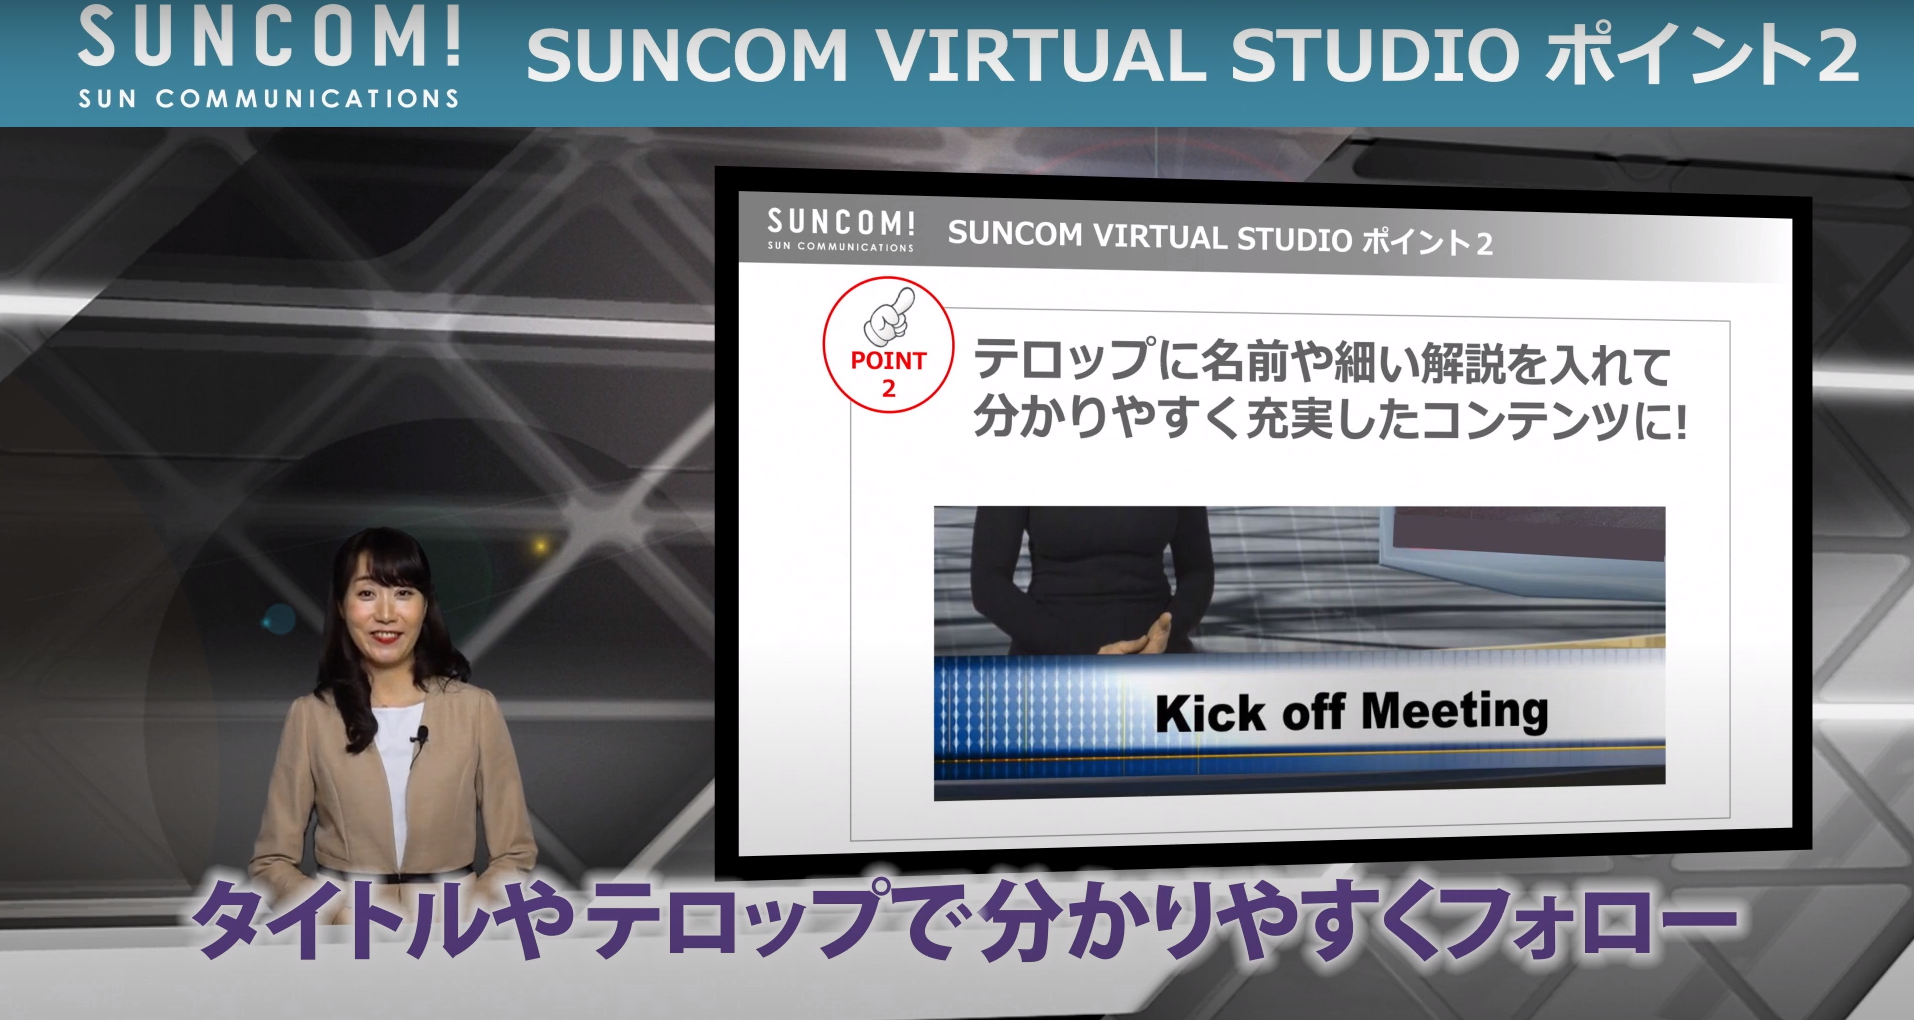 SUNCOM! VIRTUAL STUDIO